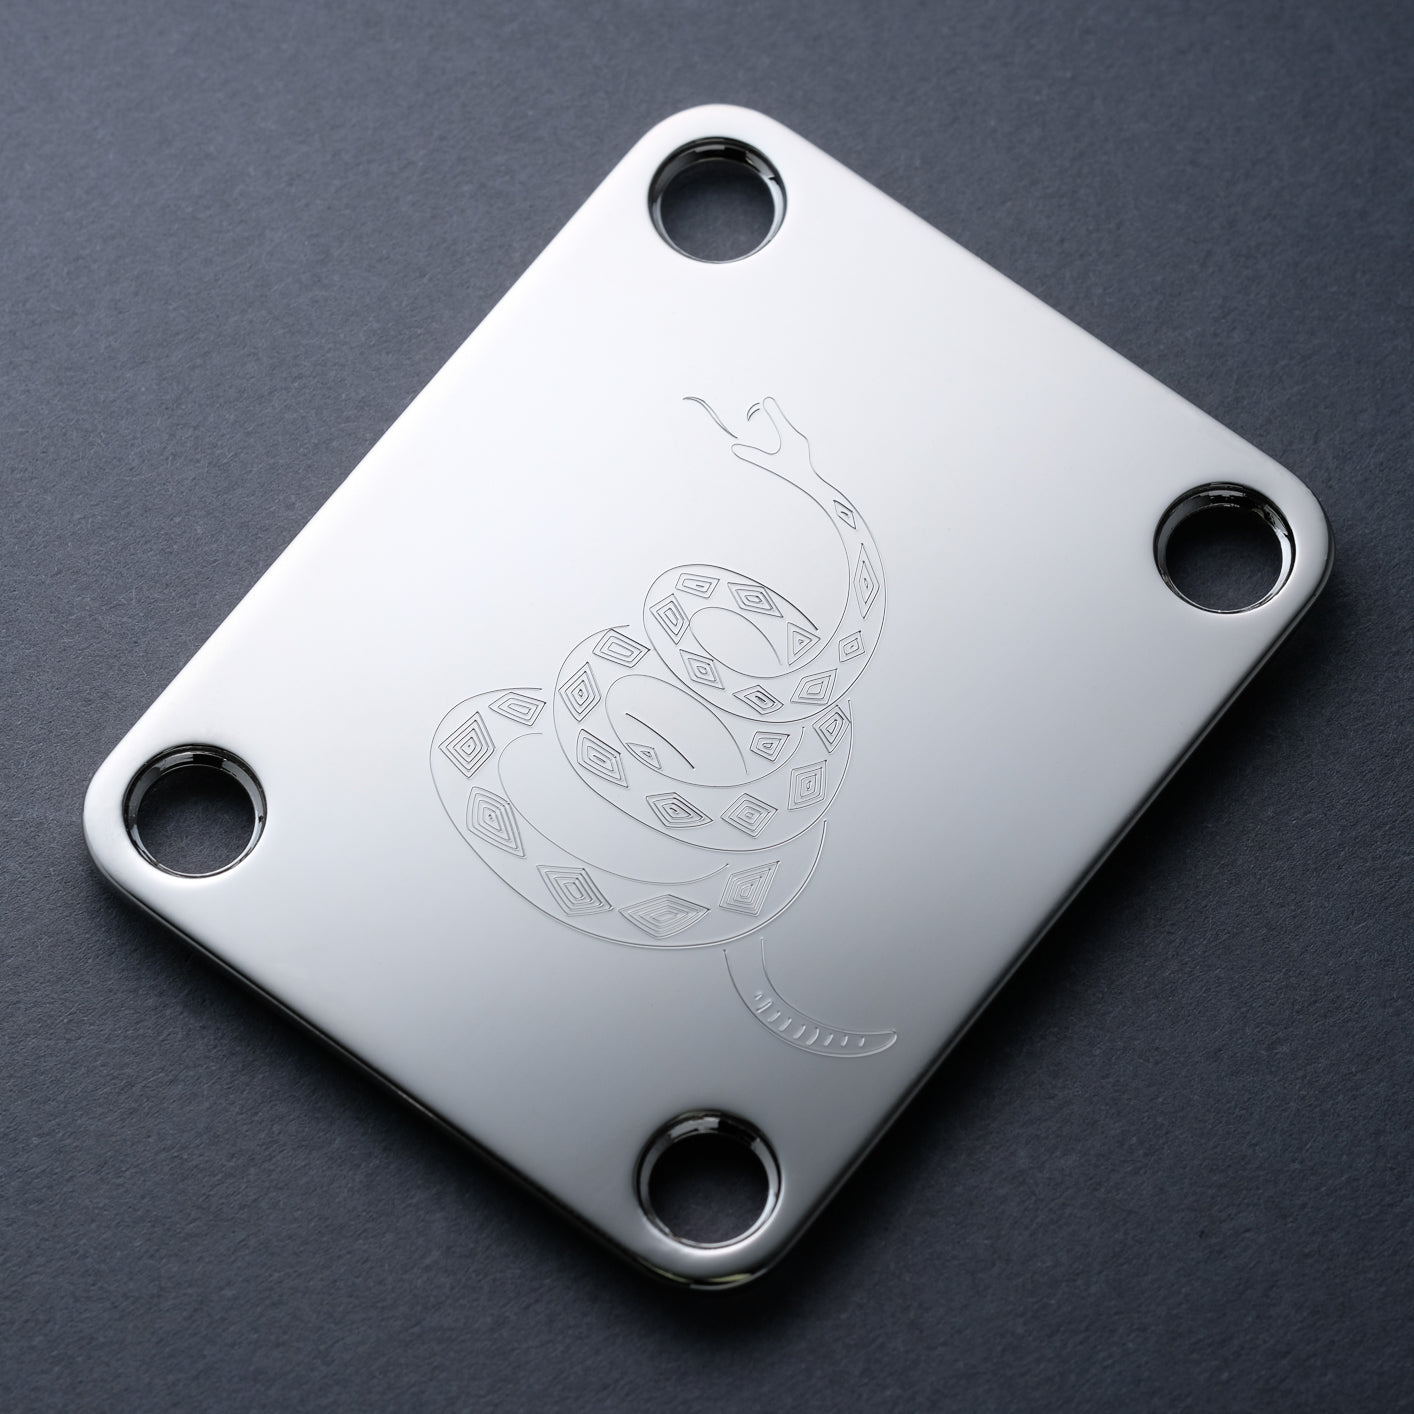 DON'T TREAD - Engraved Neckplate